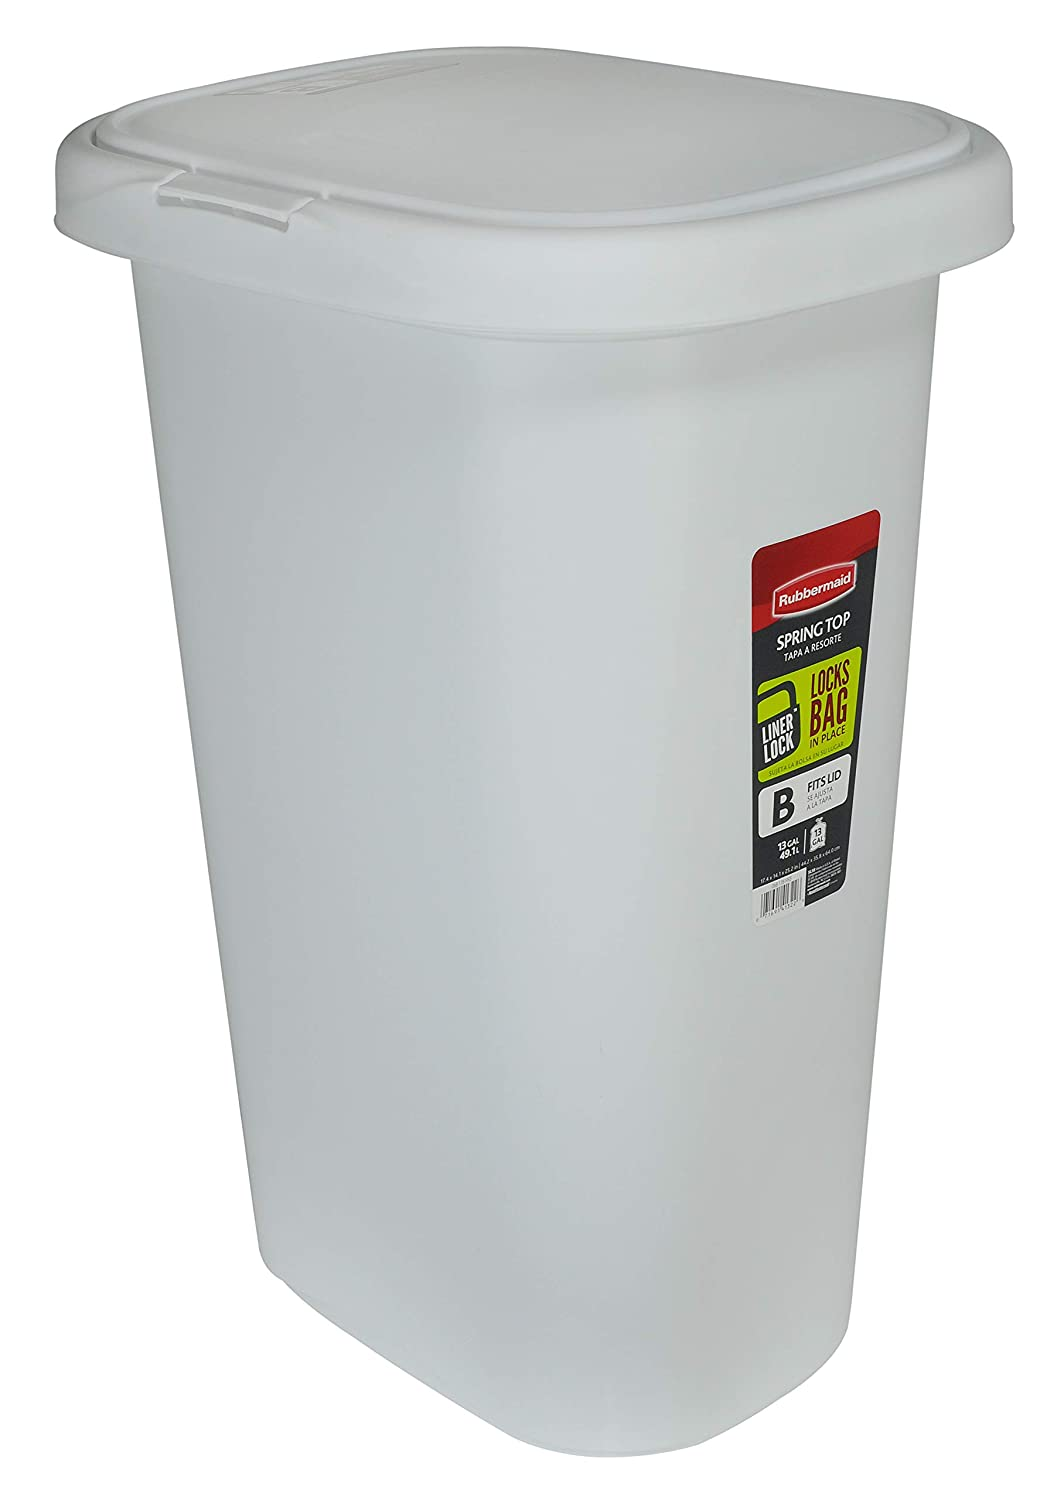 Rubbermaid Spring-Top Lid Trash Can for Home, Kitchen, and Bathroom Garbage, 13 Gallon, White